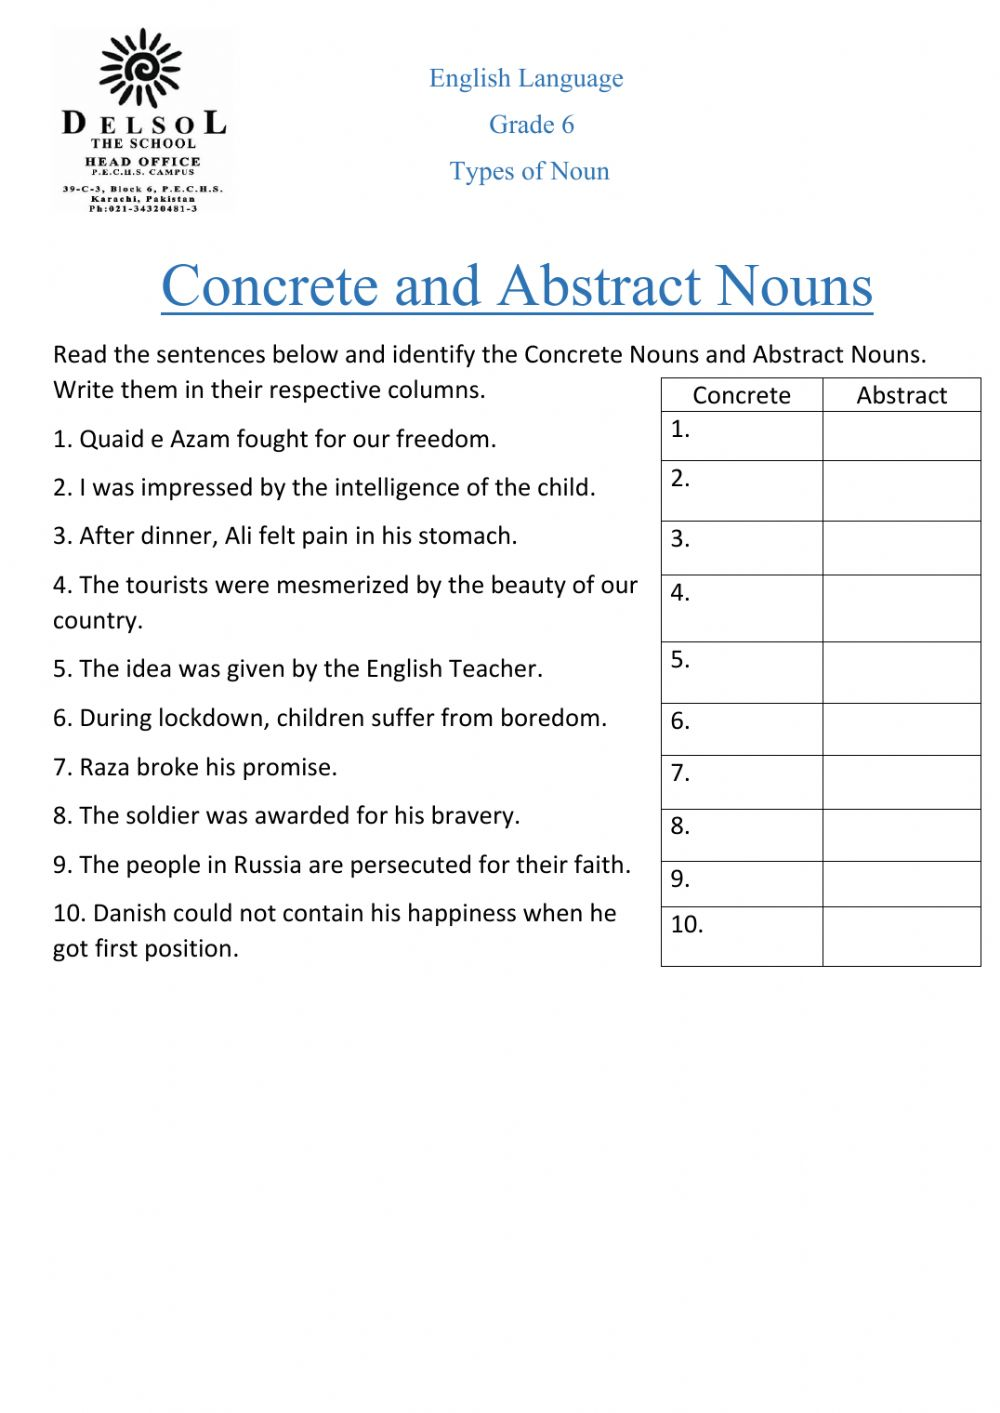 medium resolution of Concrete \u0026 Abstract Nouns worksheet